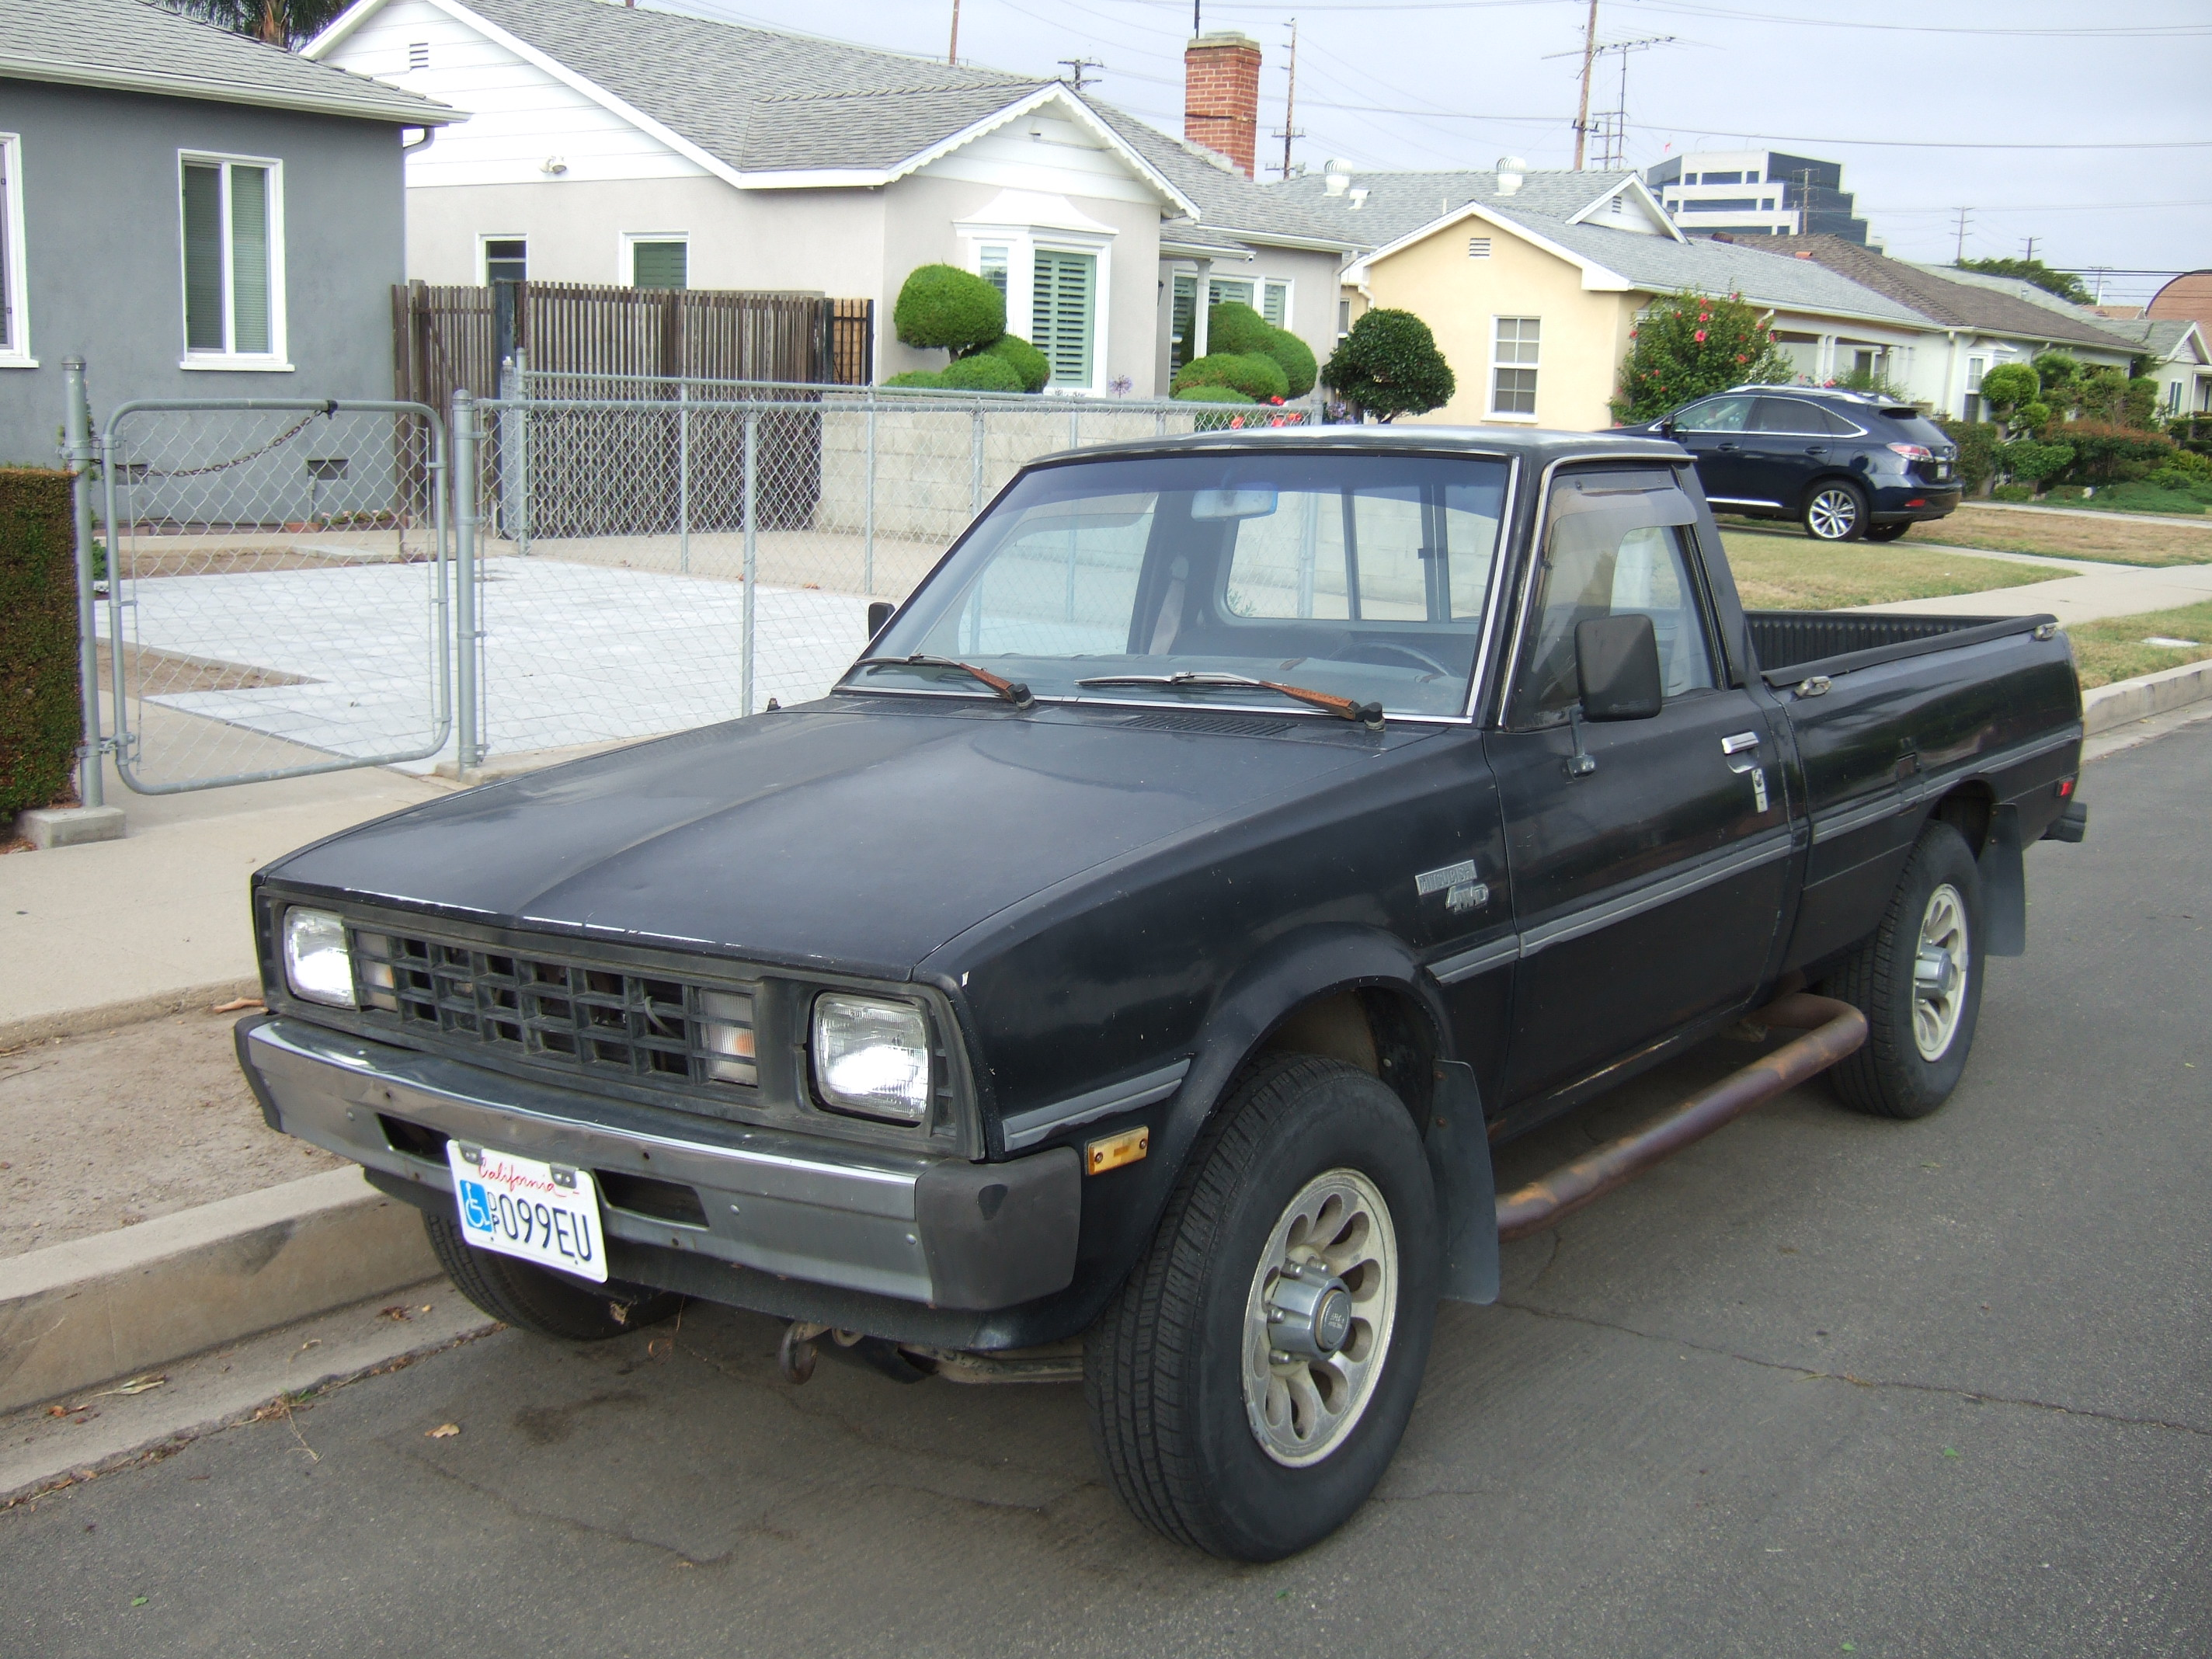 1984 Mitsubishi Mighty Max – Roadside Rambler